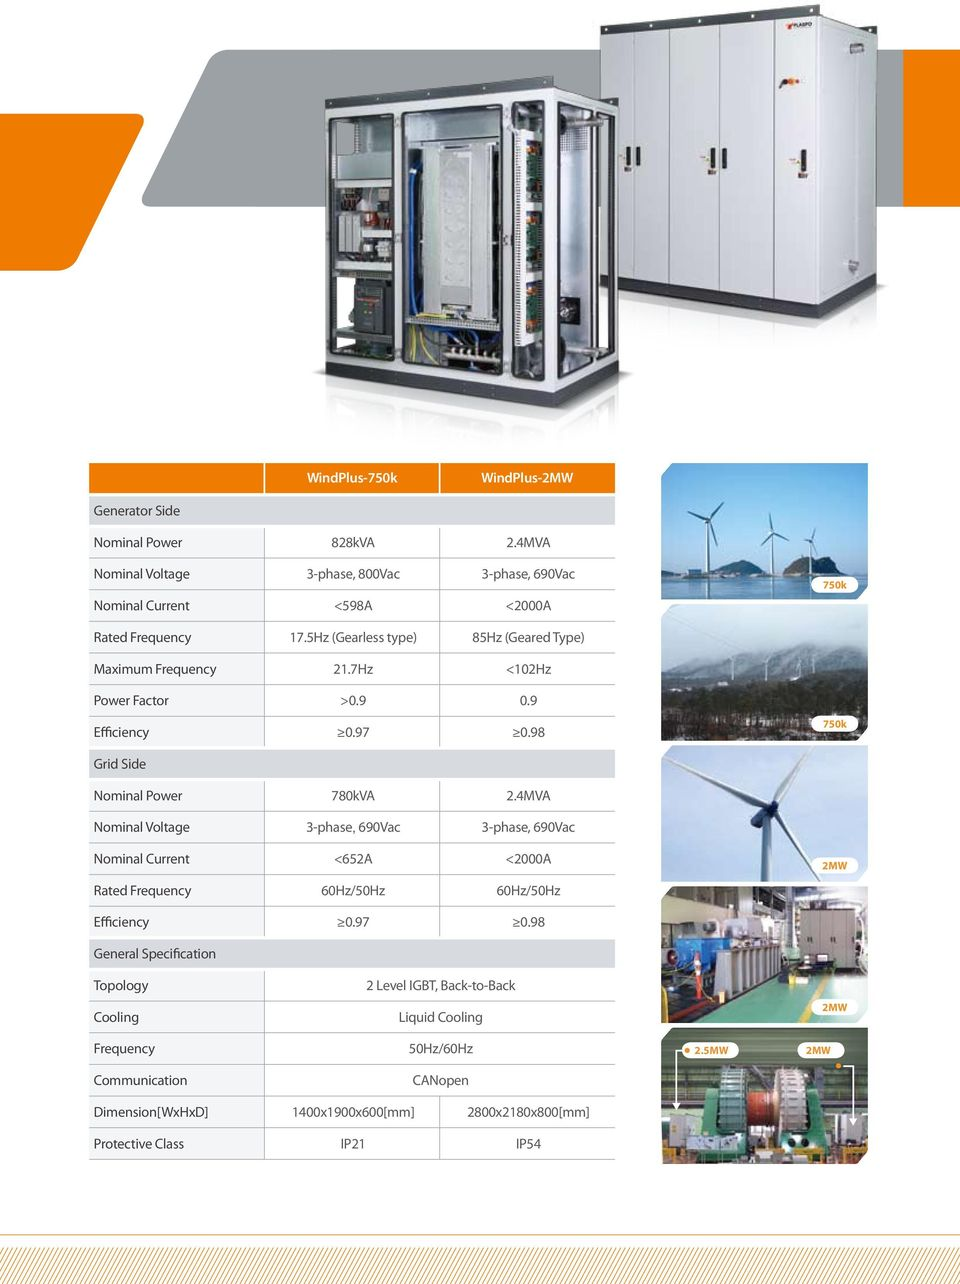 4MVA Nominal Voltage 3-phase, 690Vac 3-phase, 690Vac Nominal Current <652A <2000A Rated Frequency 60Hz/50Hz 60Hz/50Hz 2MW Efficiency 0.97 0.